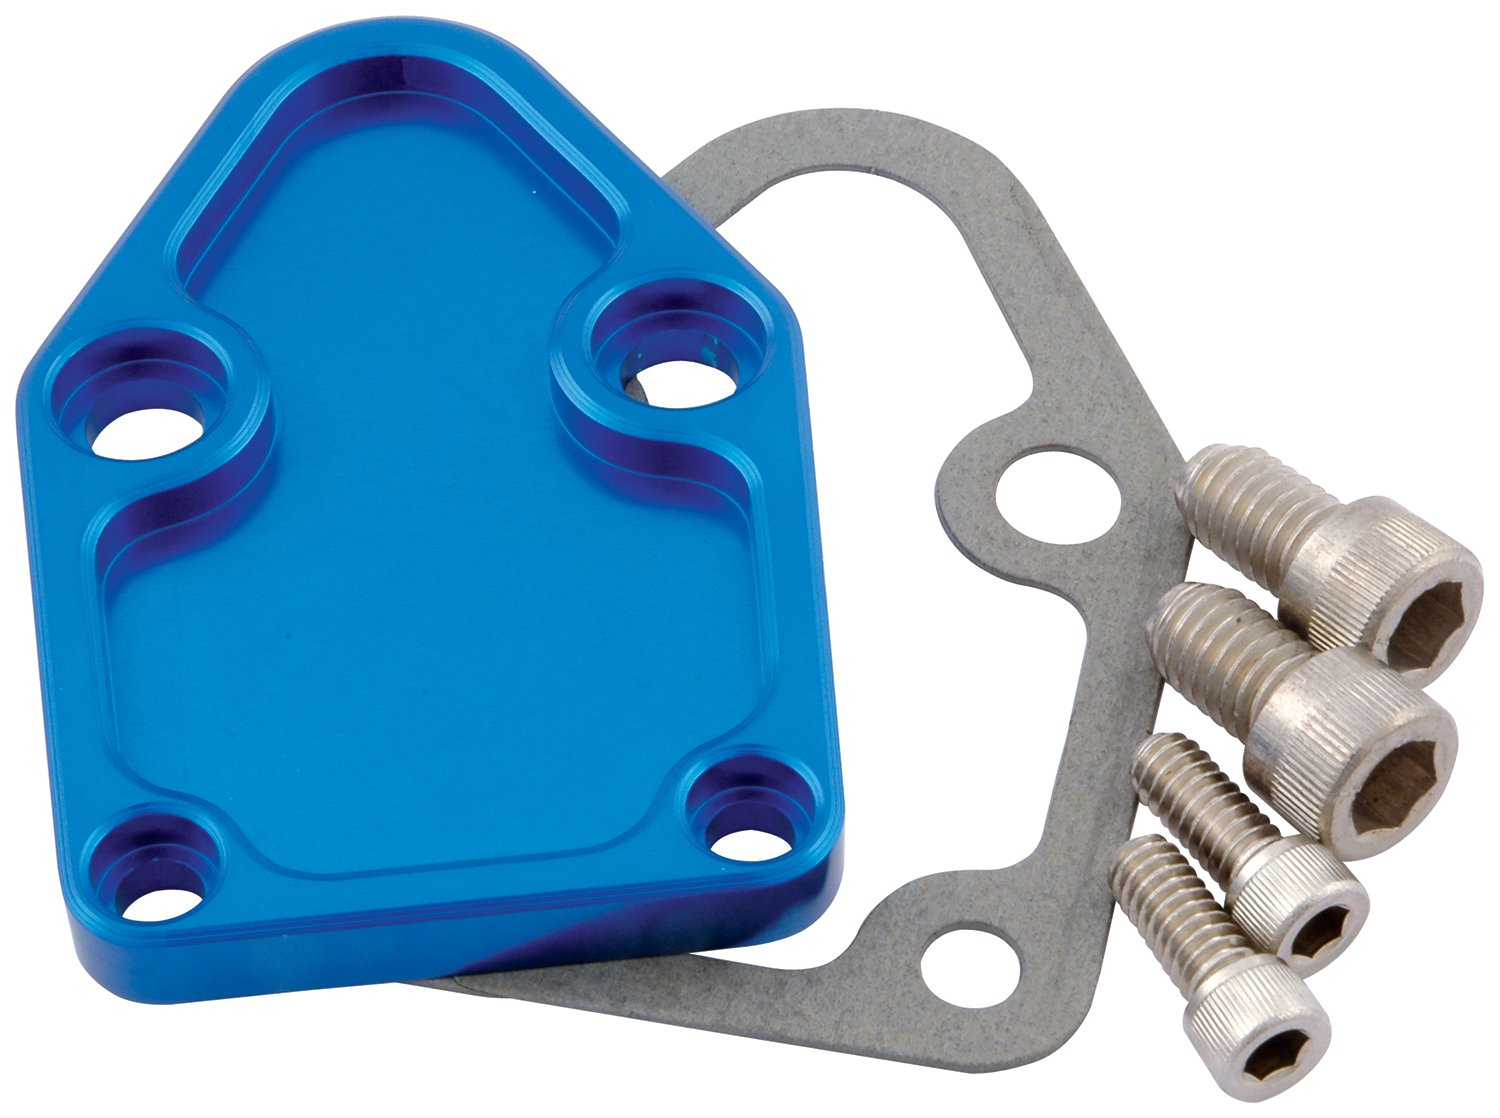 Allstar Performance ALL40300 Blue Fuel Pump Block-Off Plate for SB Chevy